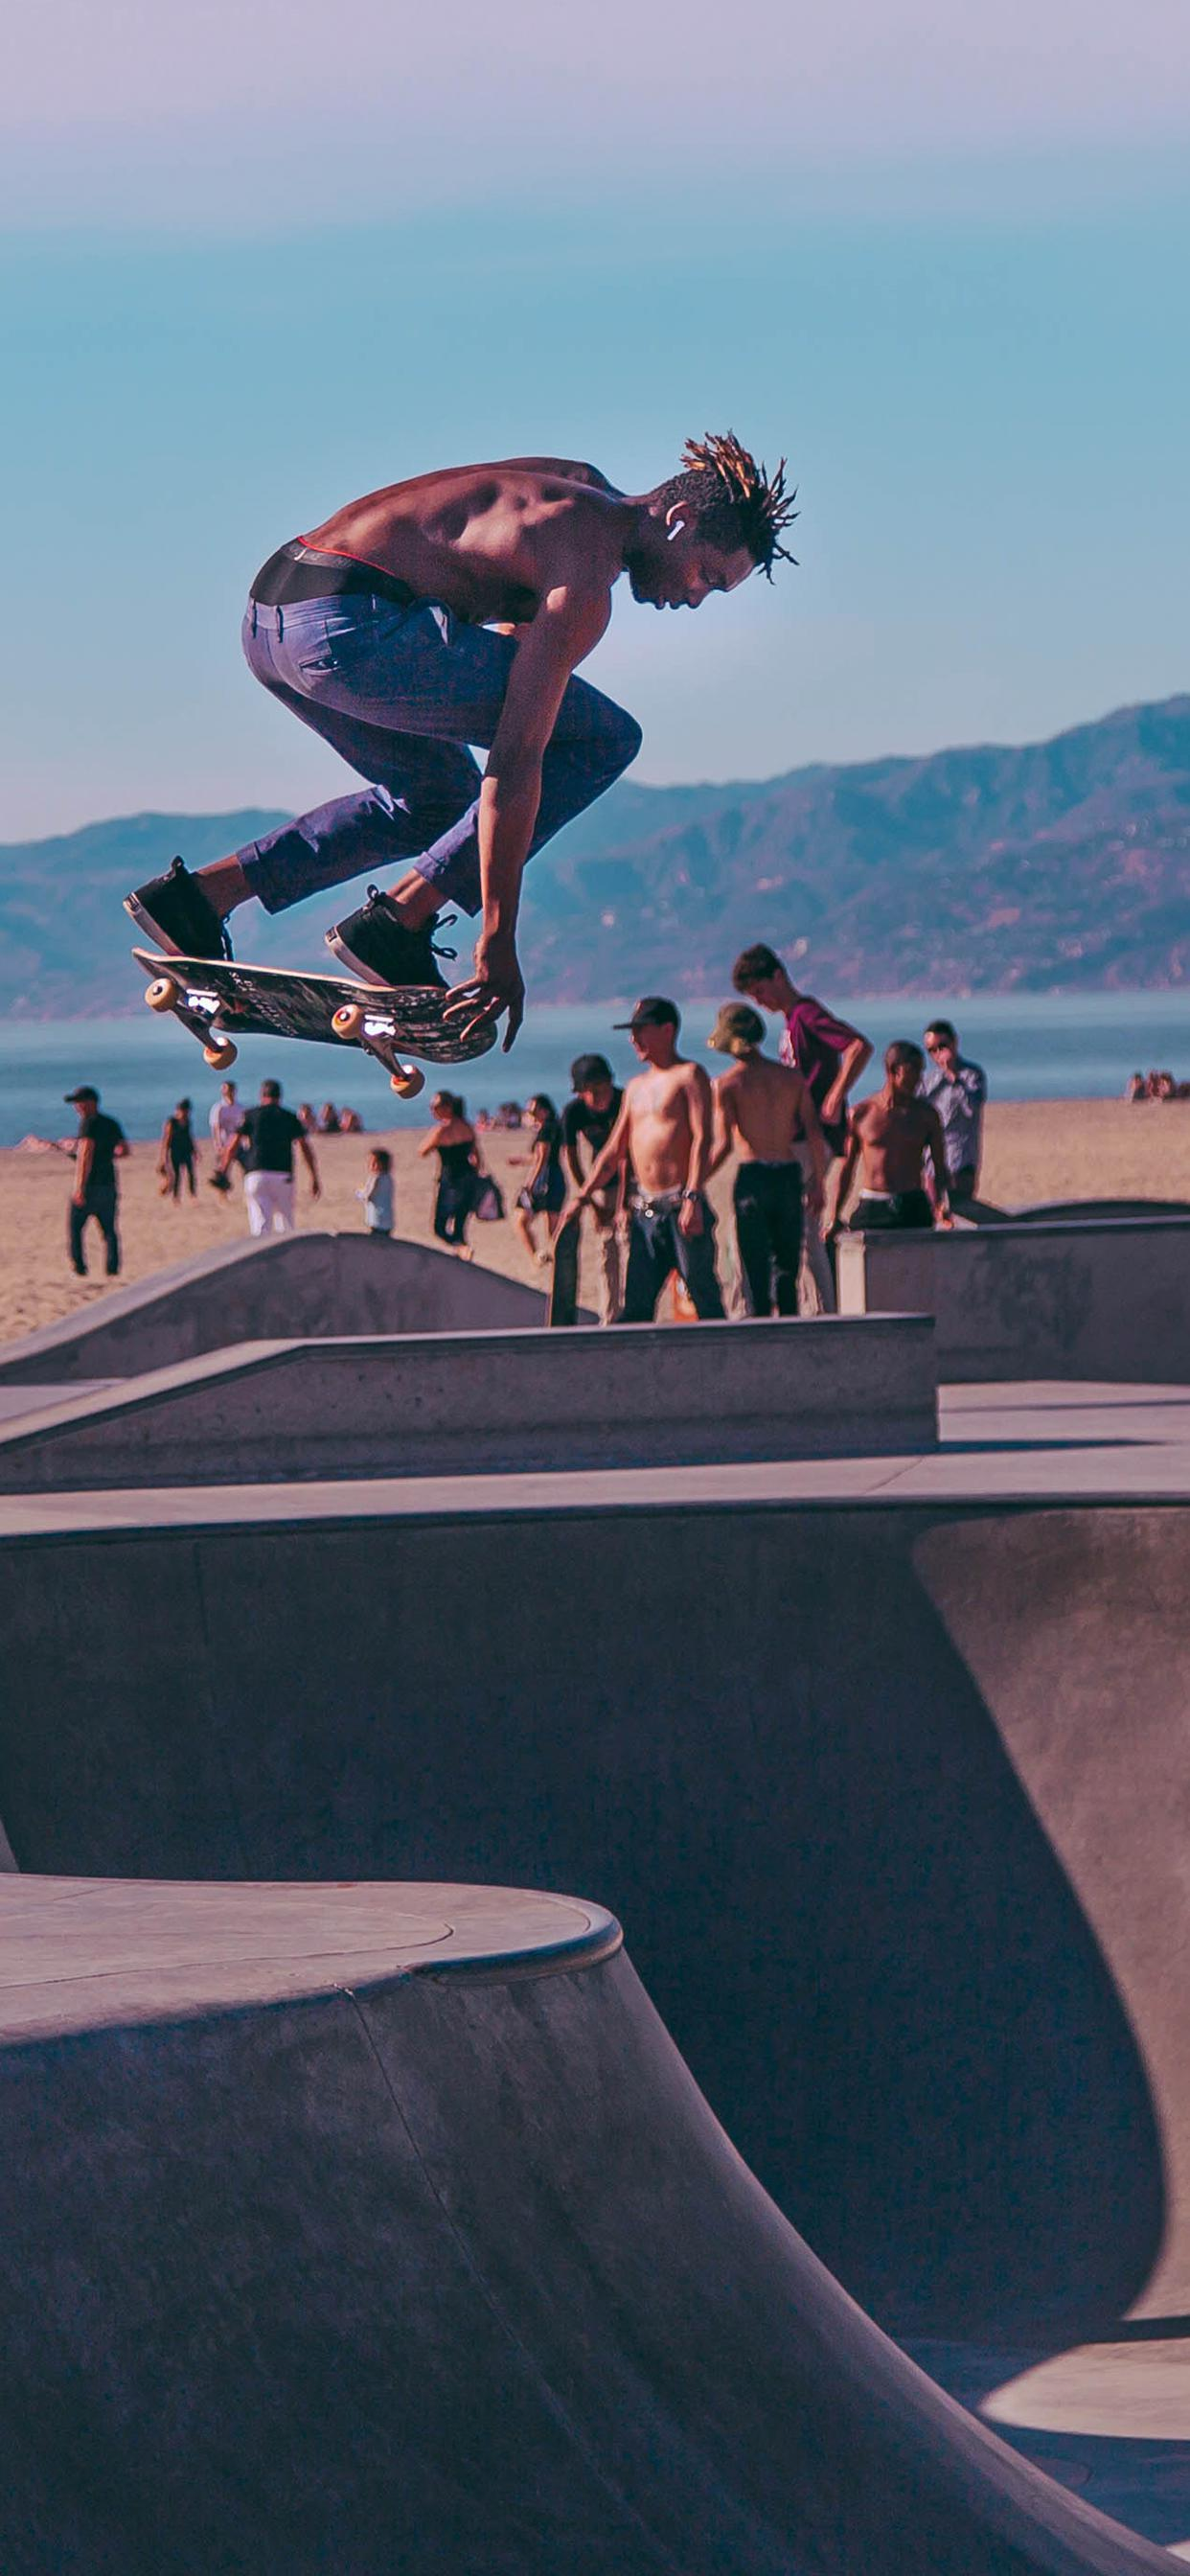 Skateboard Iphone Wallpapers On